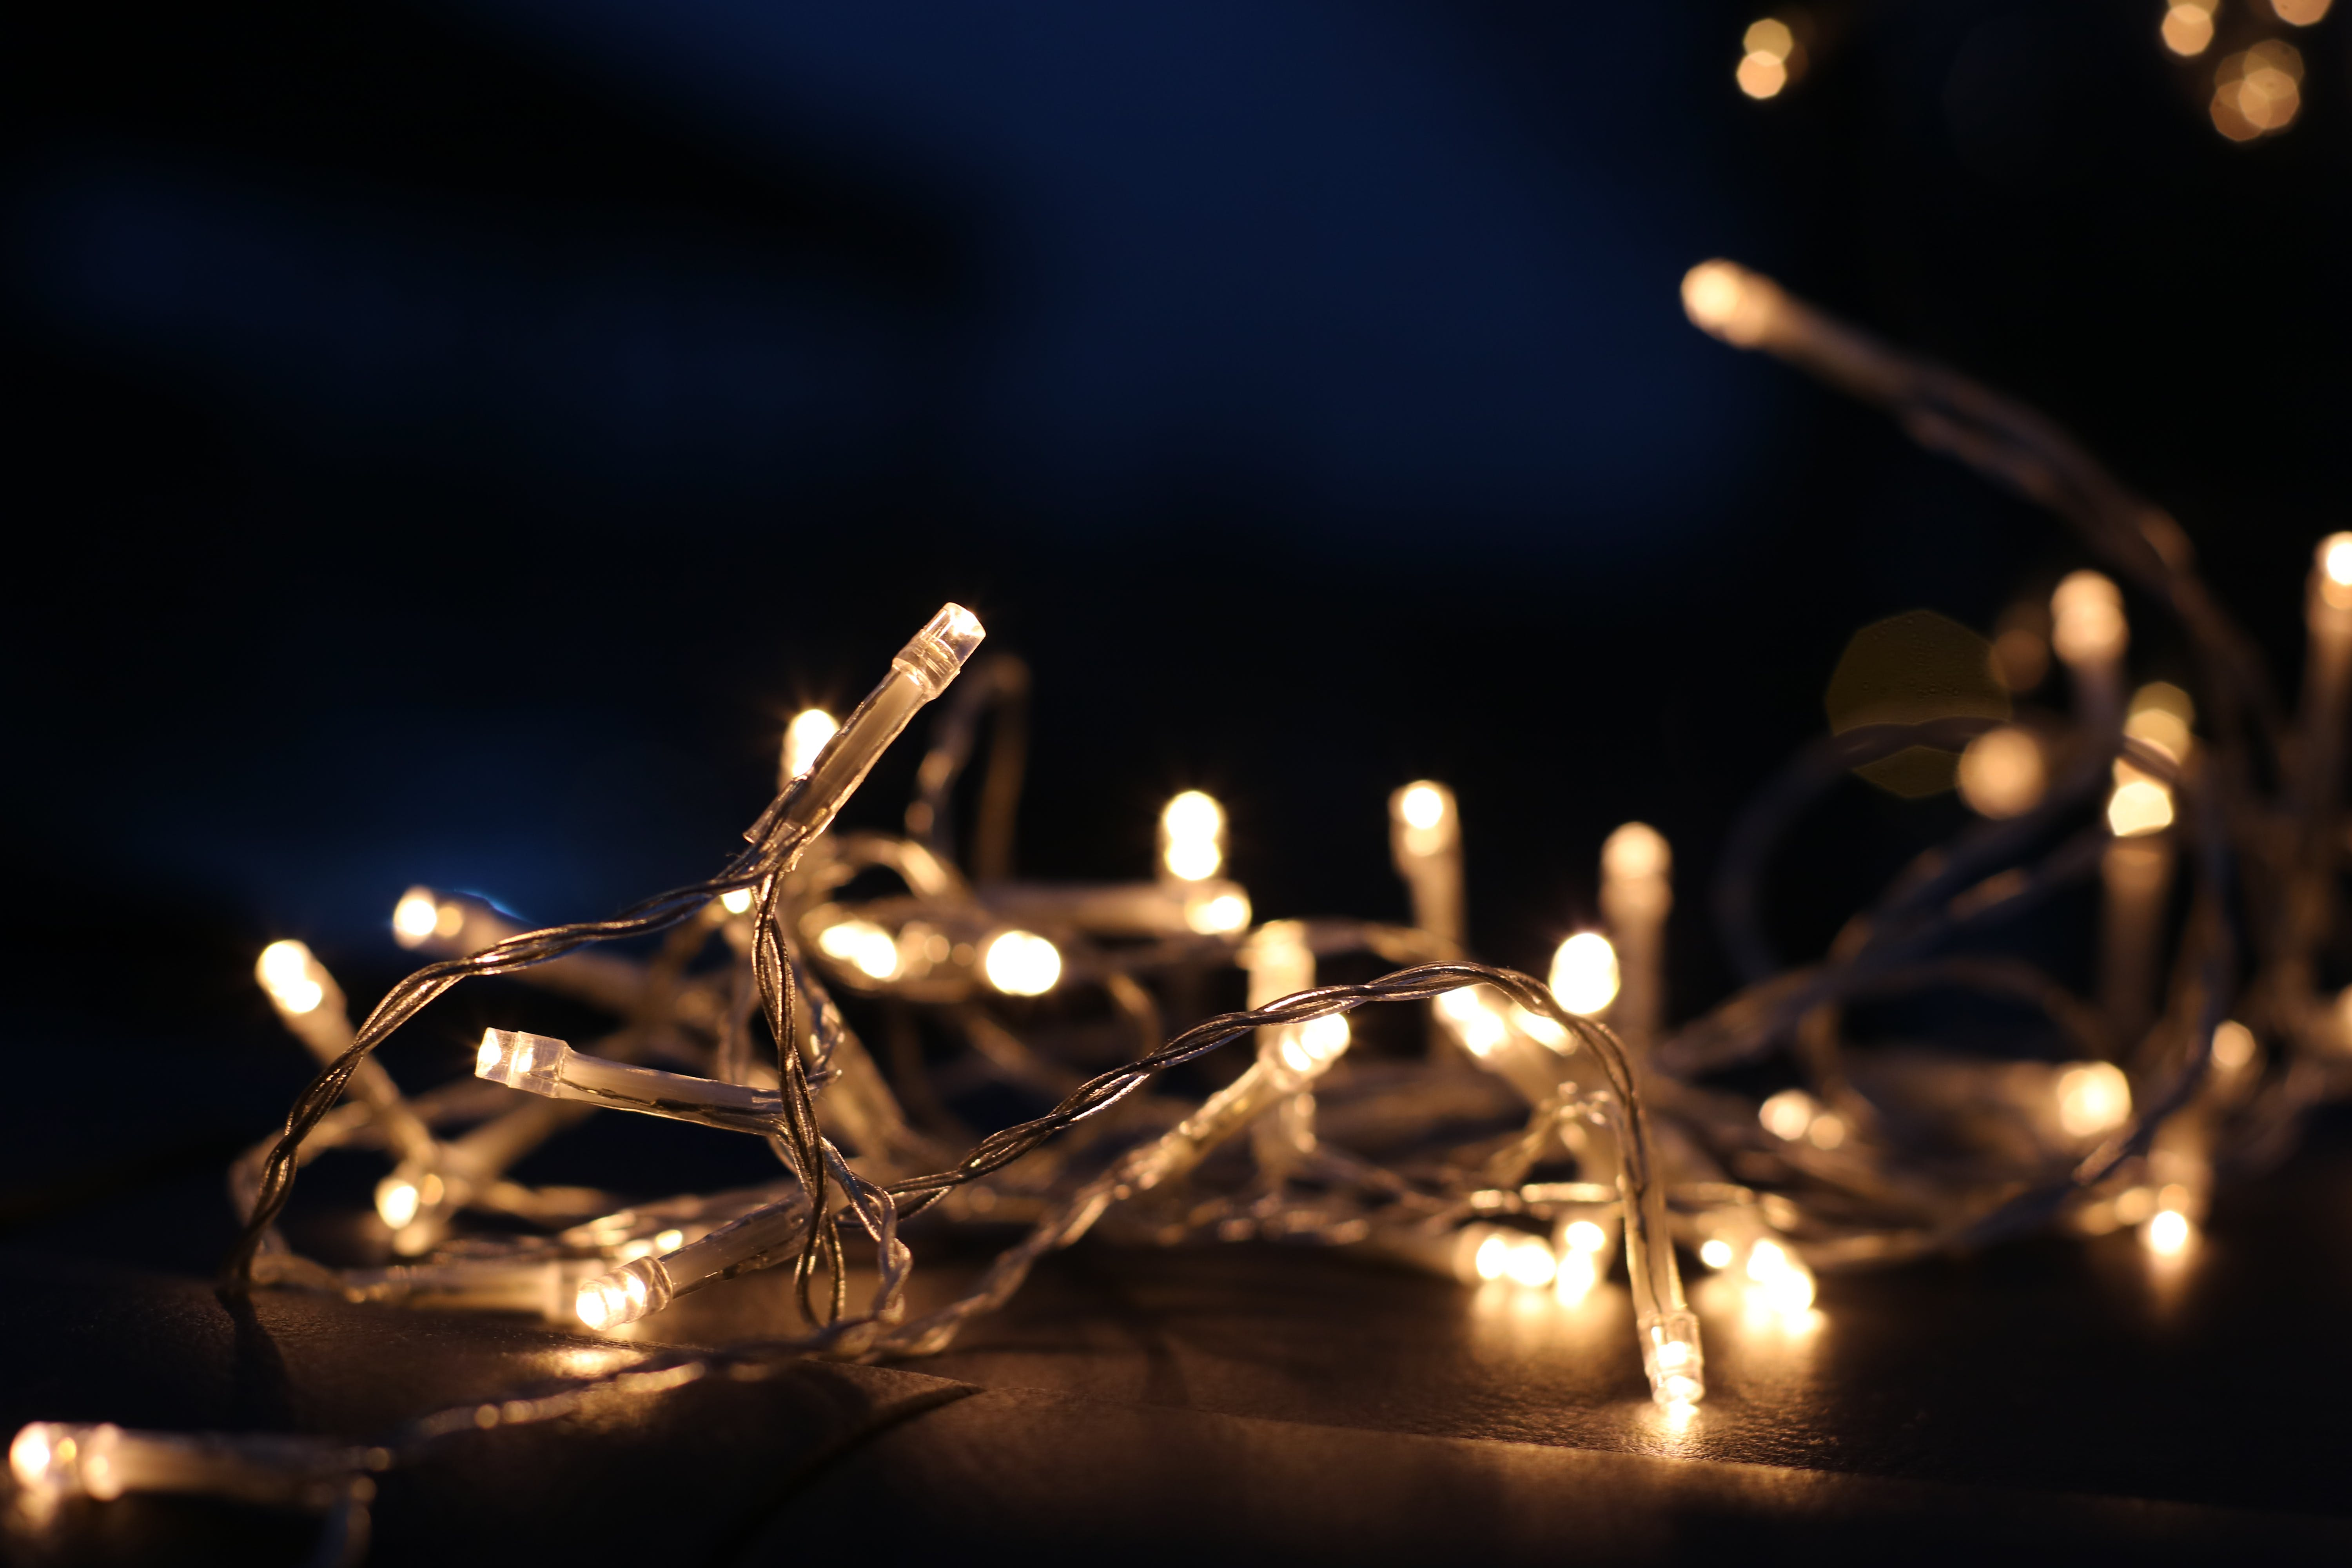 Selective Focus Photo of White and Yellow String Lights